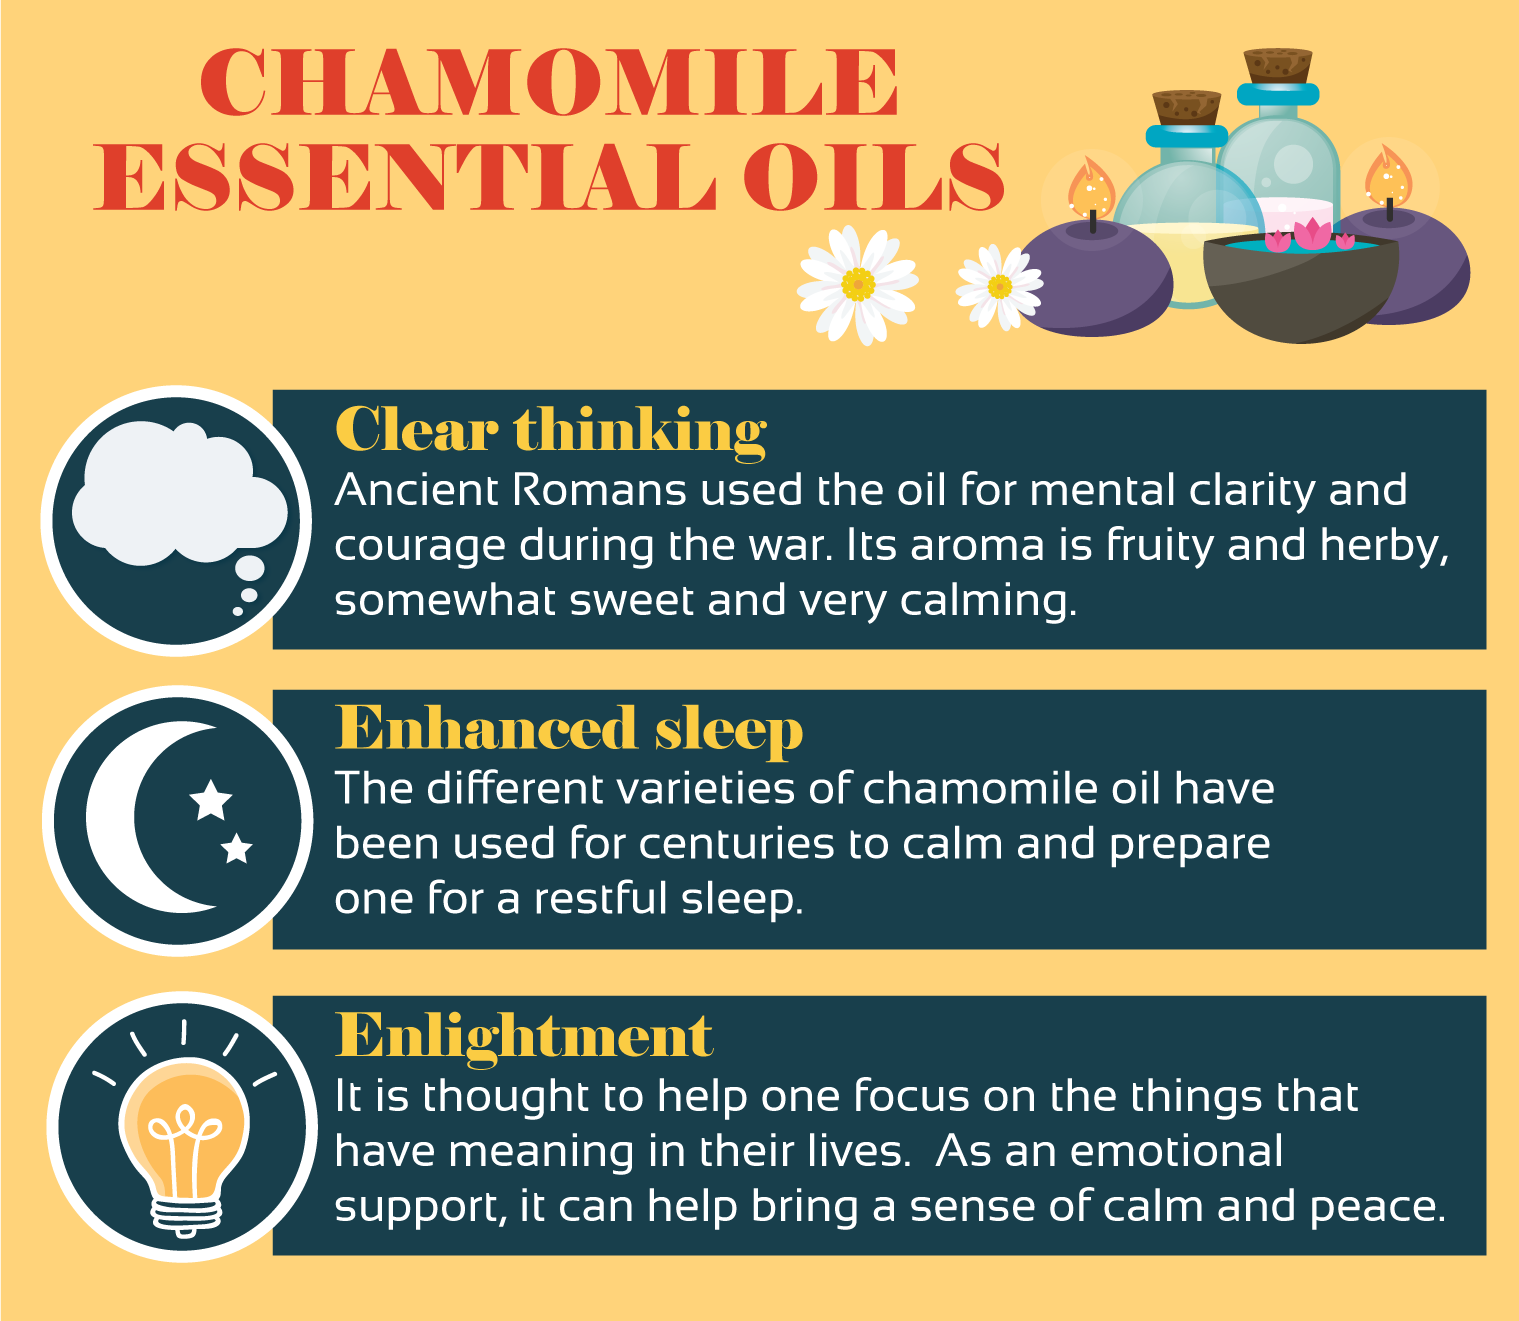 illustration of chamomile essential oils